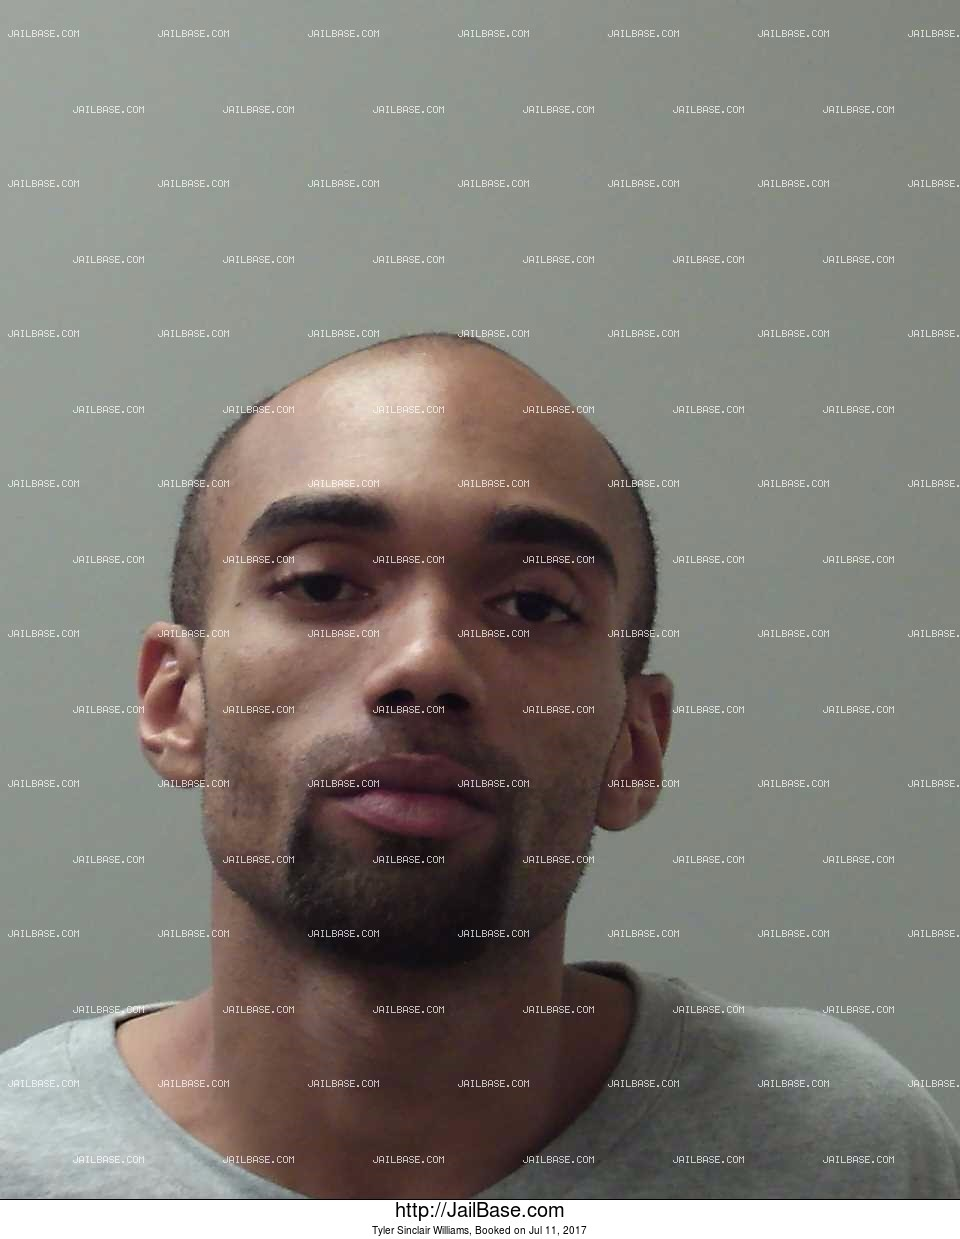 TYLER SINCLAIR WILLIAMS mugshot picture